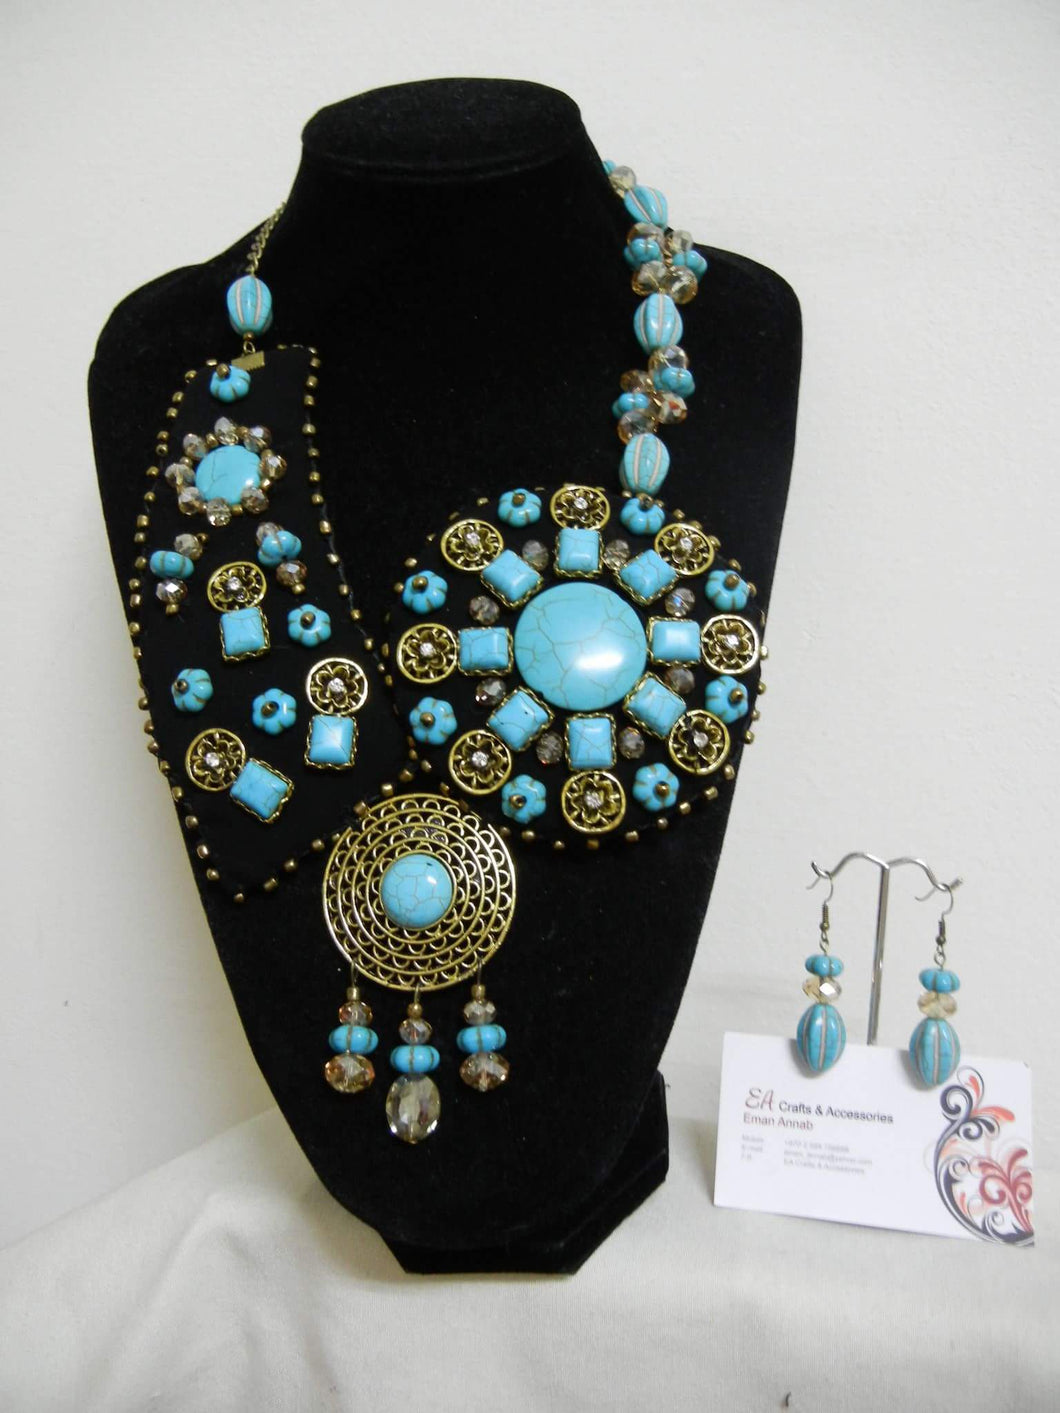 Handmade Boho style set of turquoise necklace and earrings - Falastini Brand